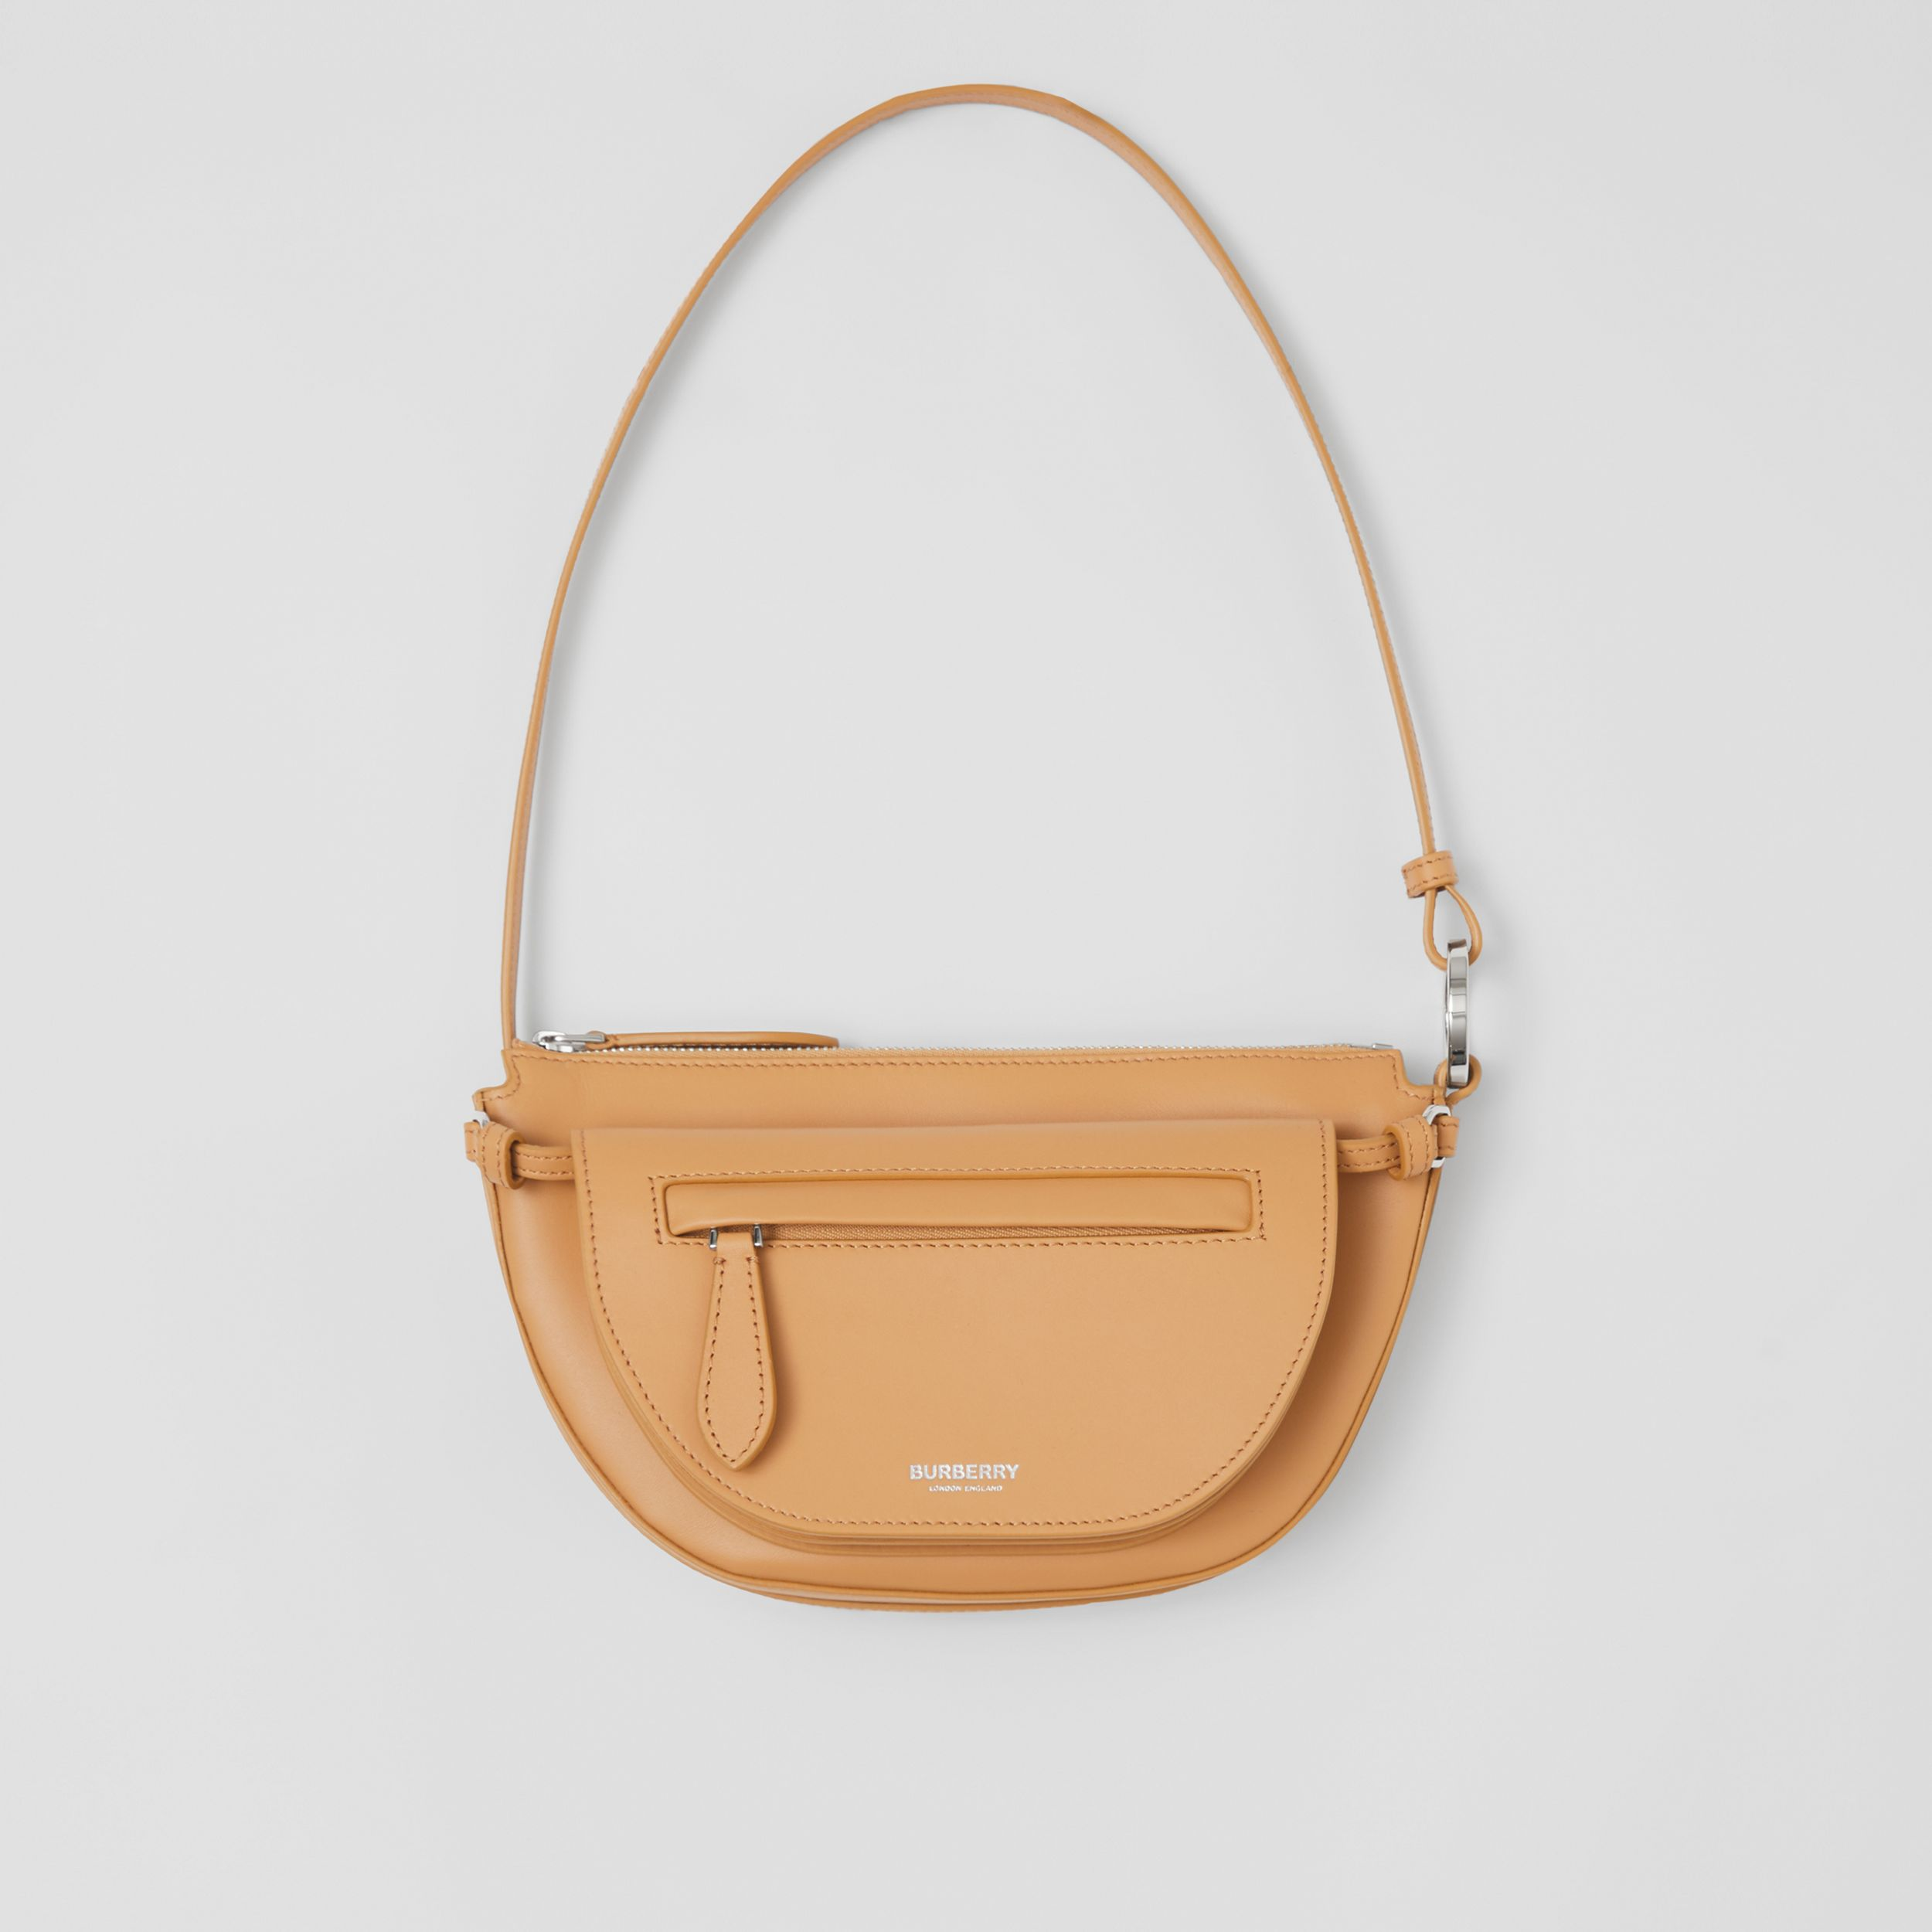 Mini Leather Double Olympia Bag in Warm Sand - Women | Burberry - 1